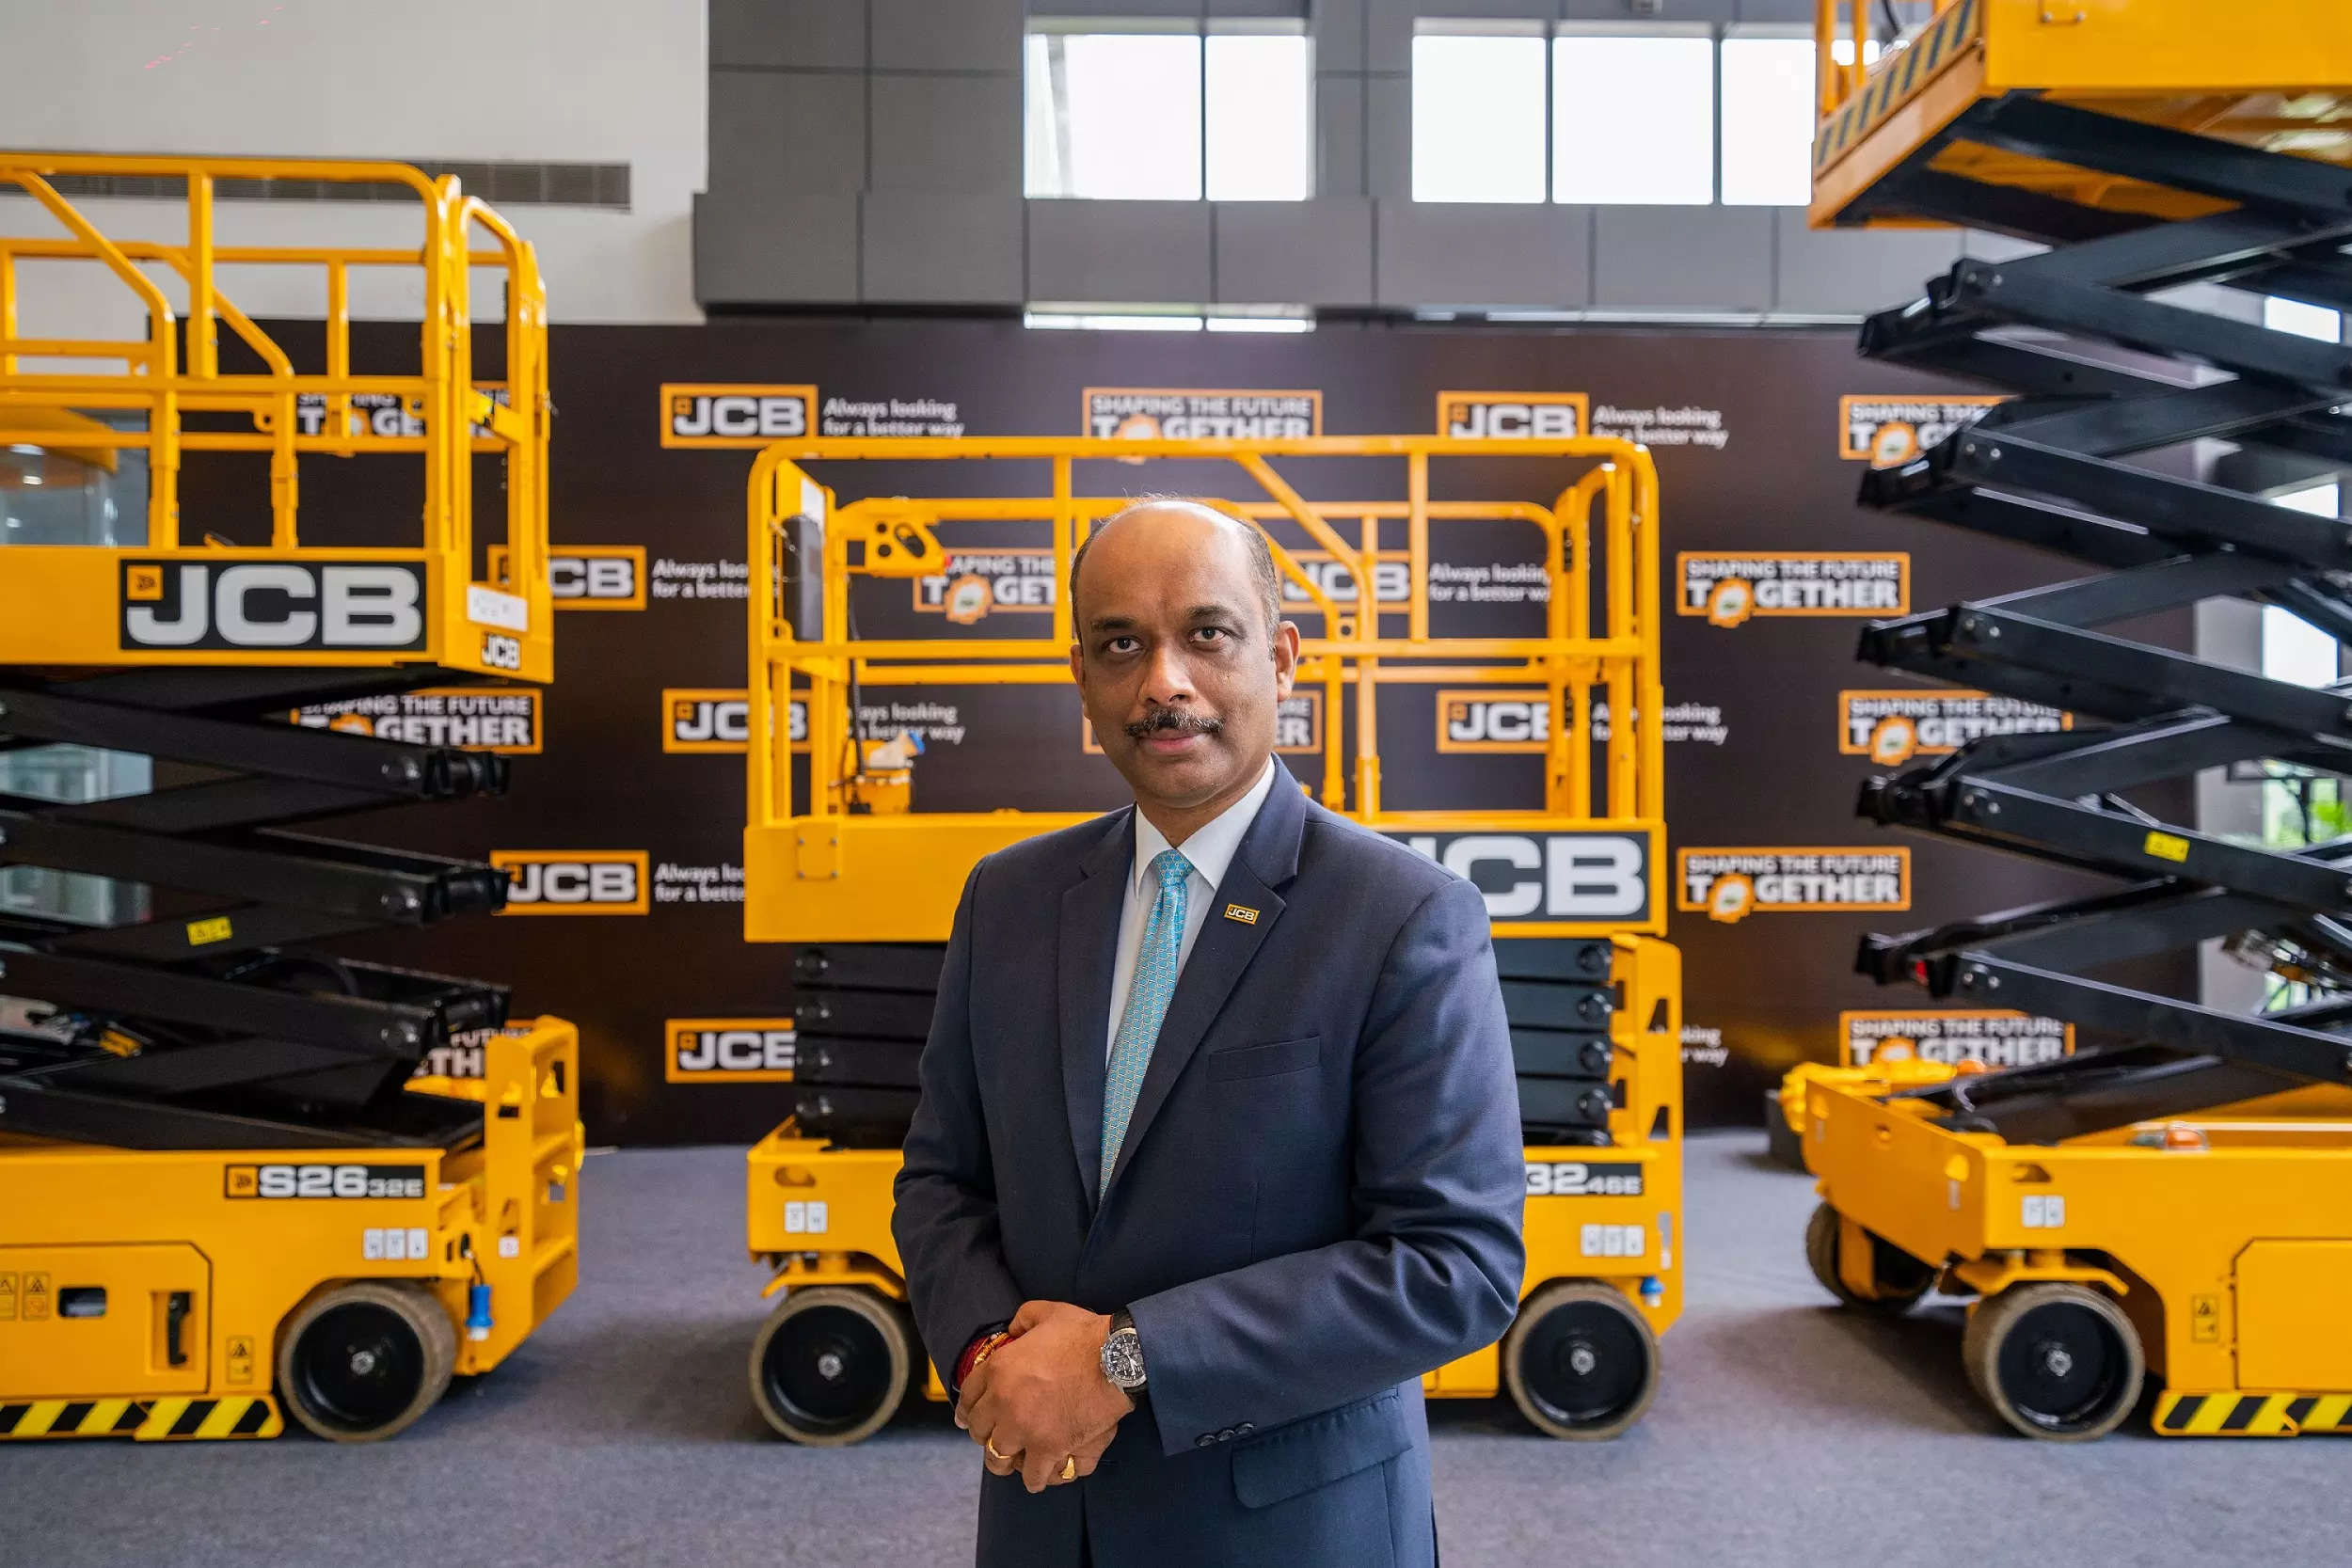 Deepak Shetty, CEO and MD of JCB India